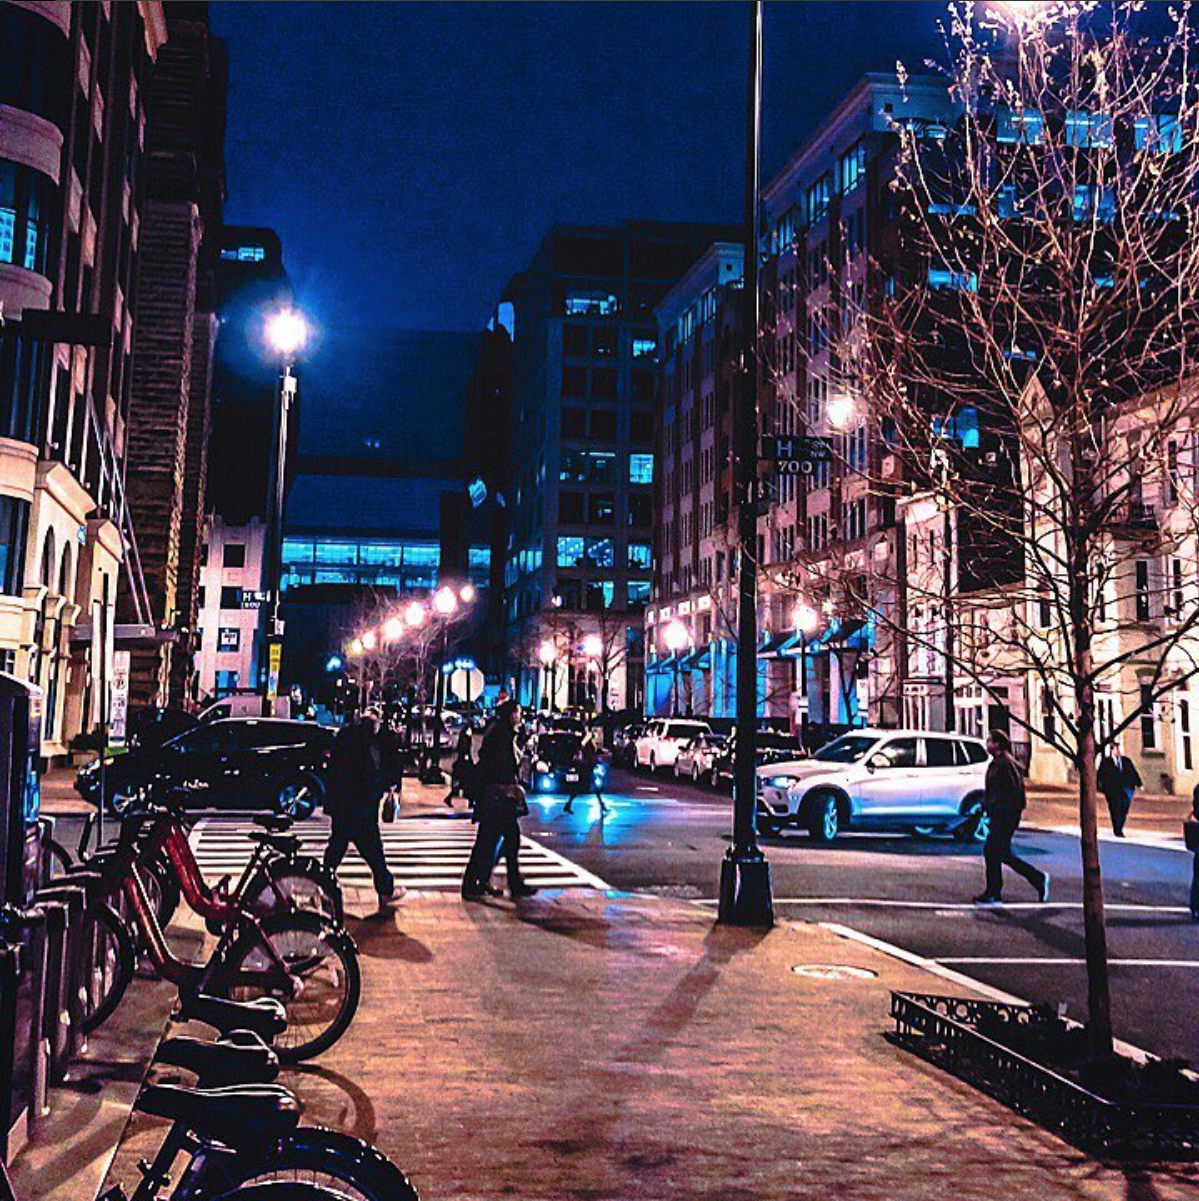 D.C. at night is so lovely. (Photo via @kuntong__)